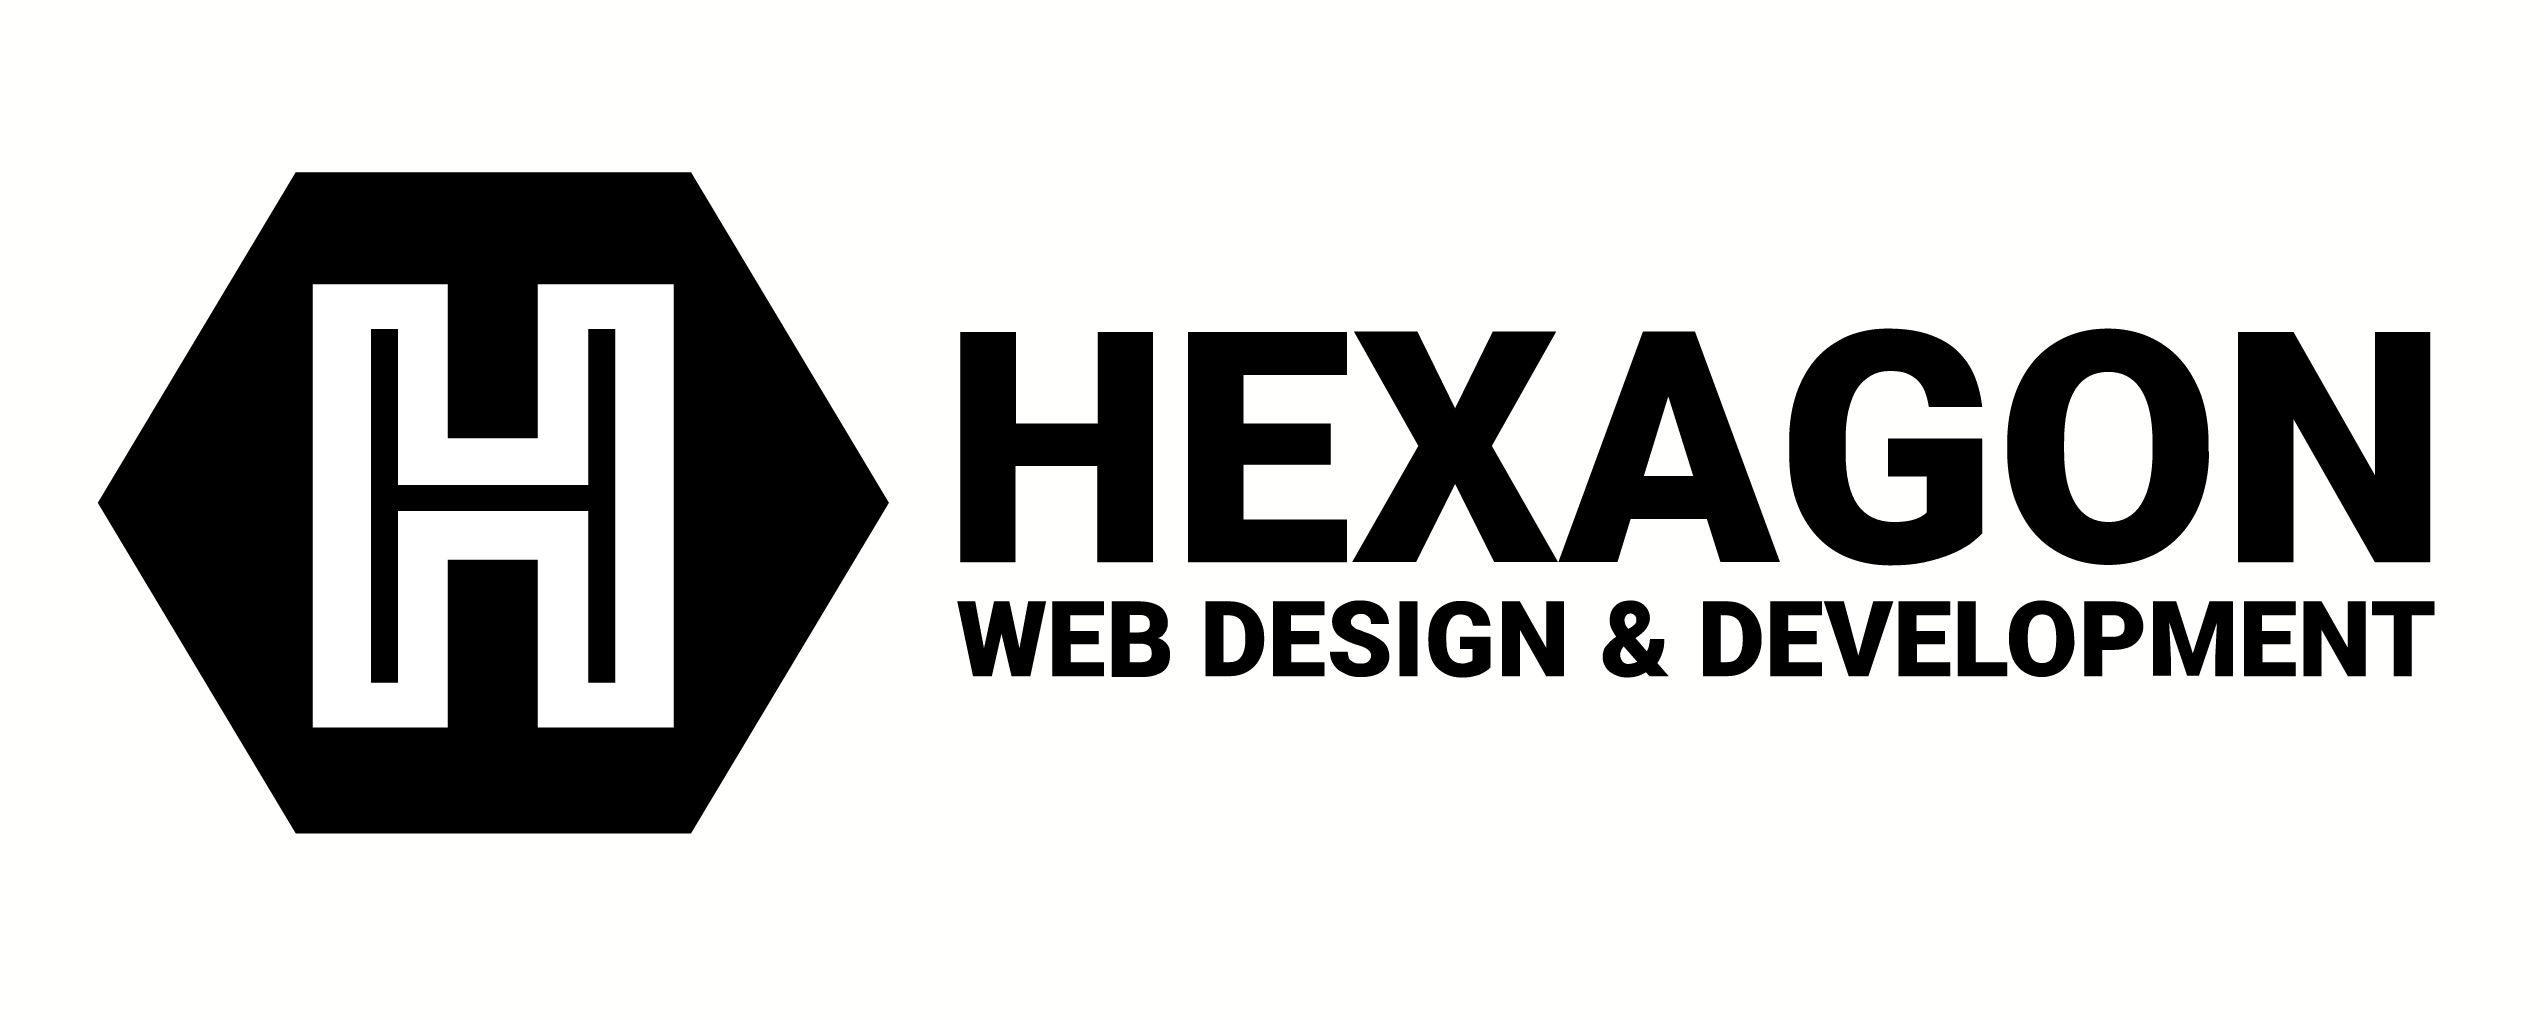 A very real logo for a fictitious company